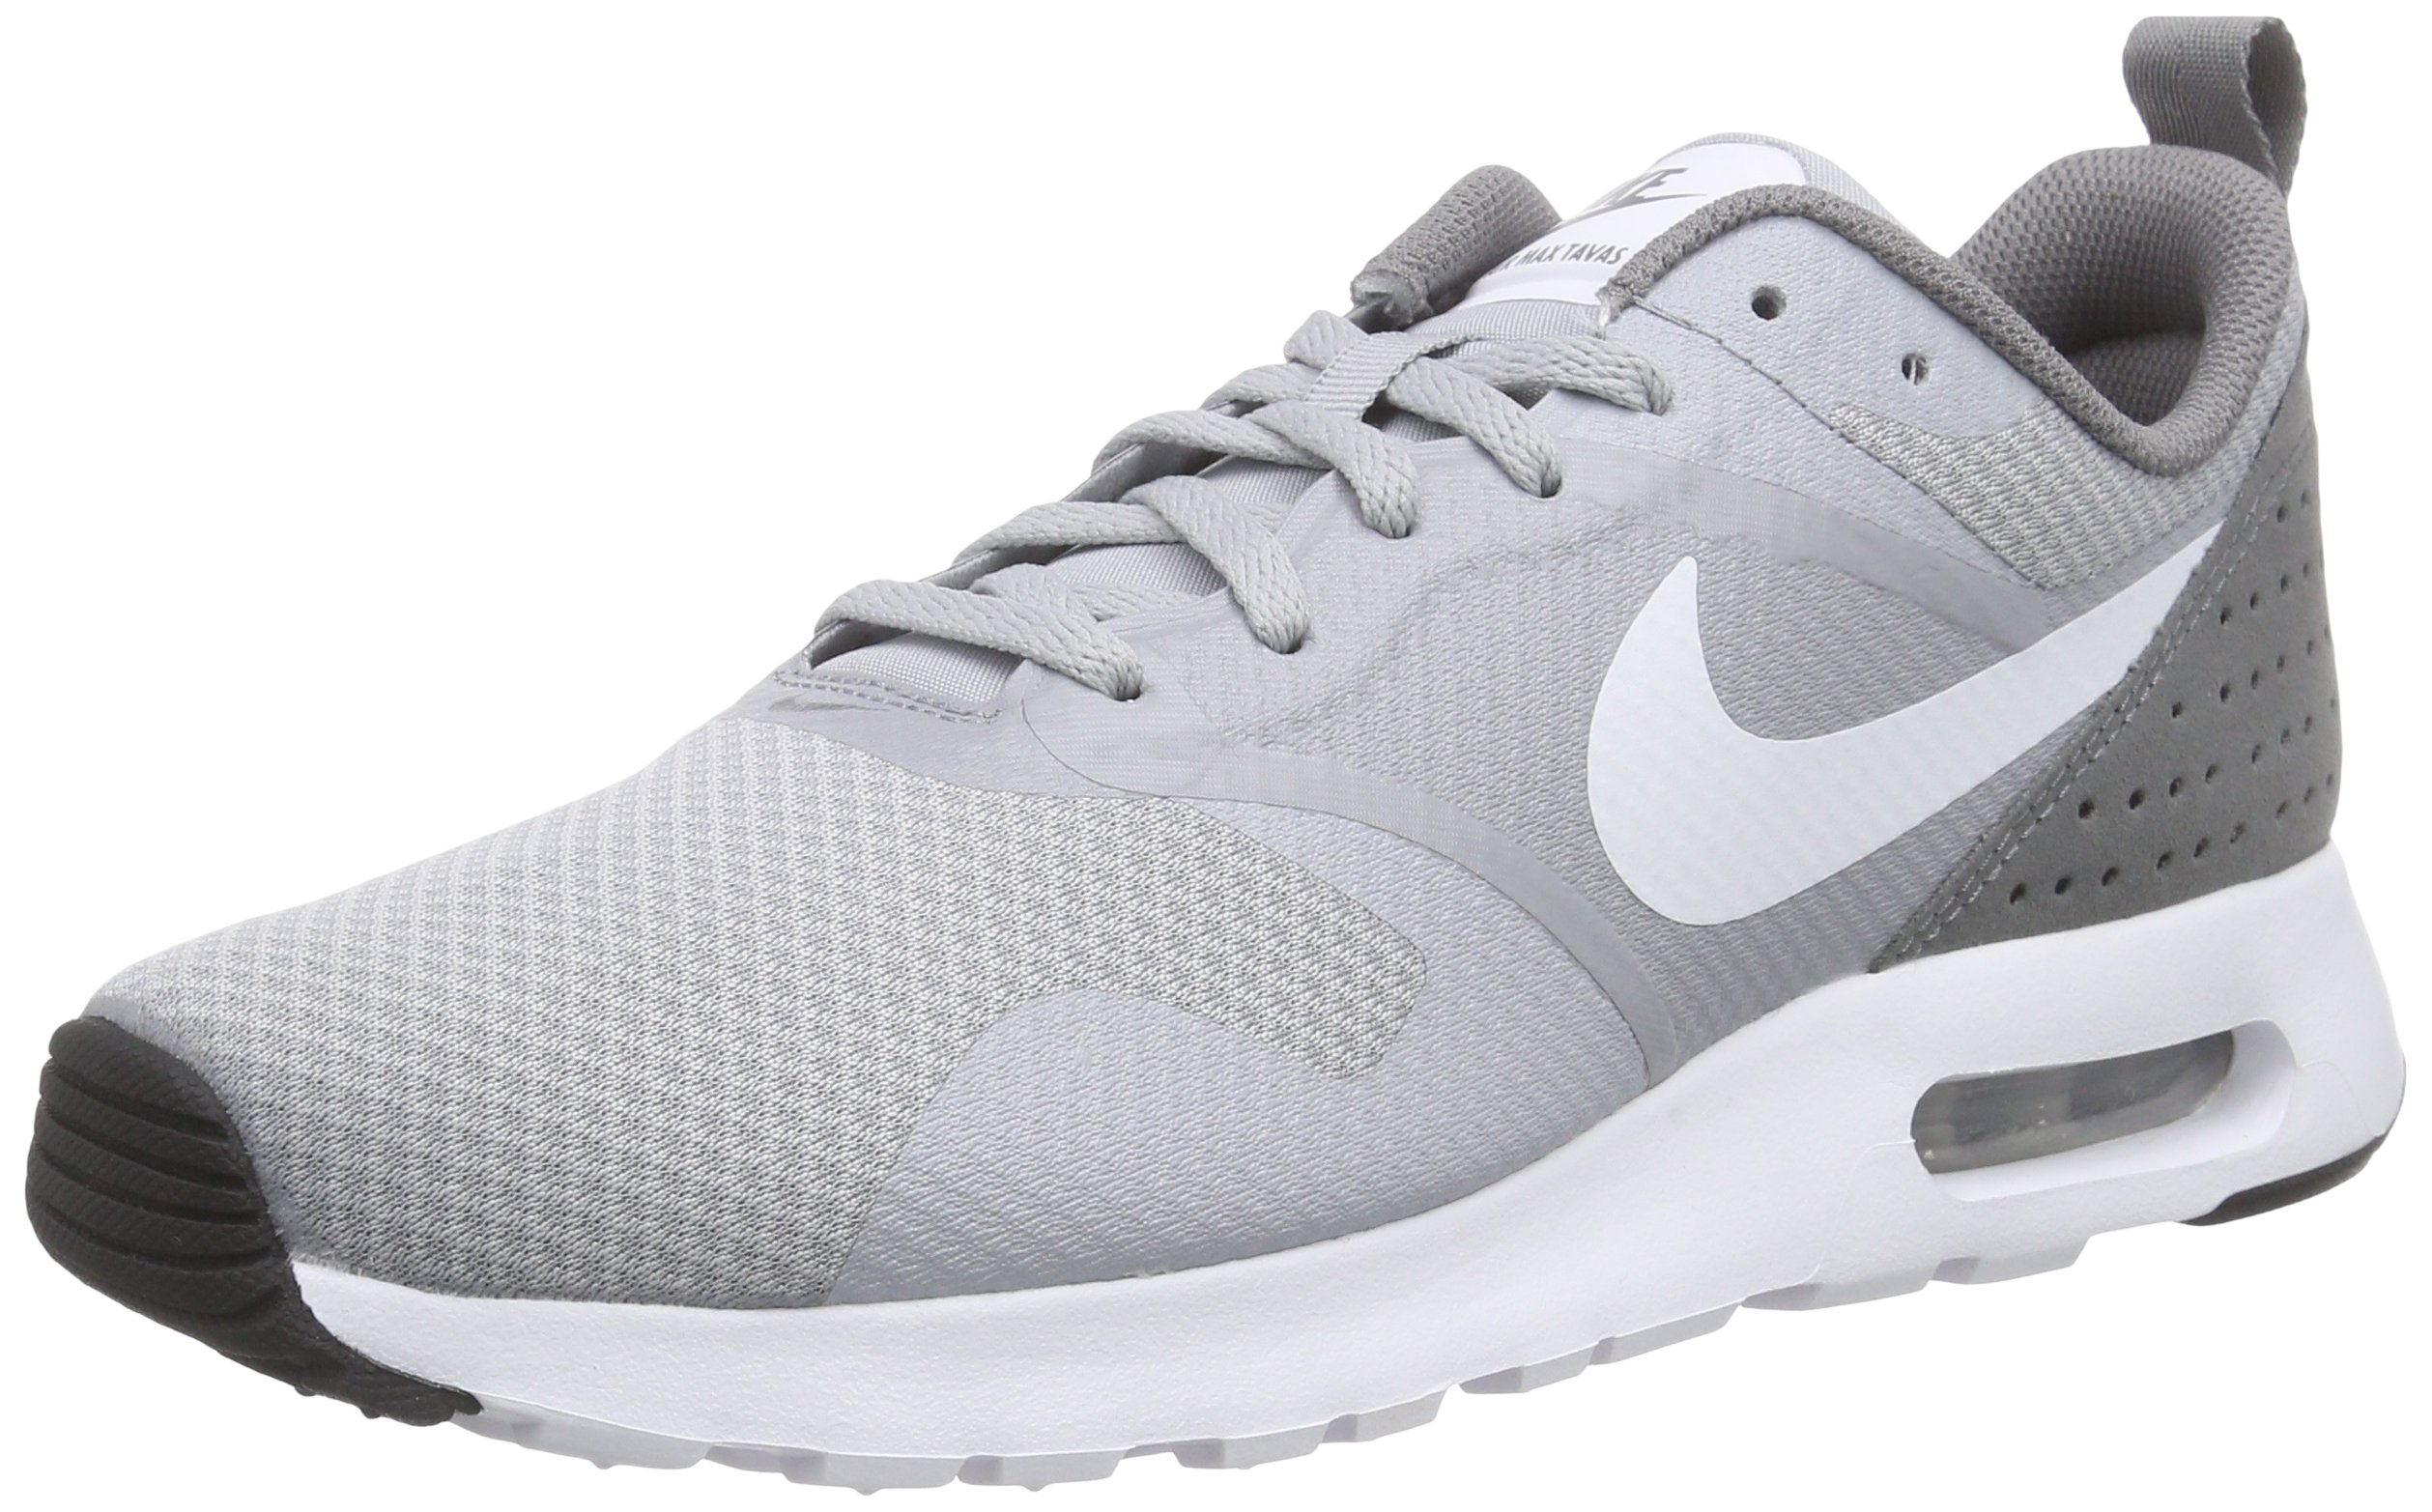 brand new 7e026 68e67 Galleon - Nike Air Max Tavas Mens Running Trainers 705149 Sneakers Shoes  (US 8.5, Wolf Grey White Cool Grey White 007)